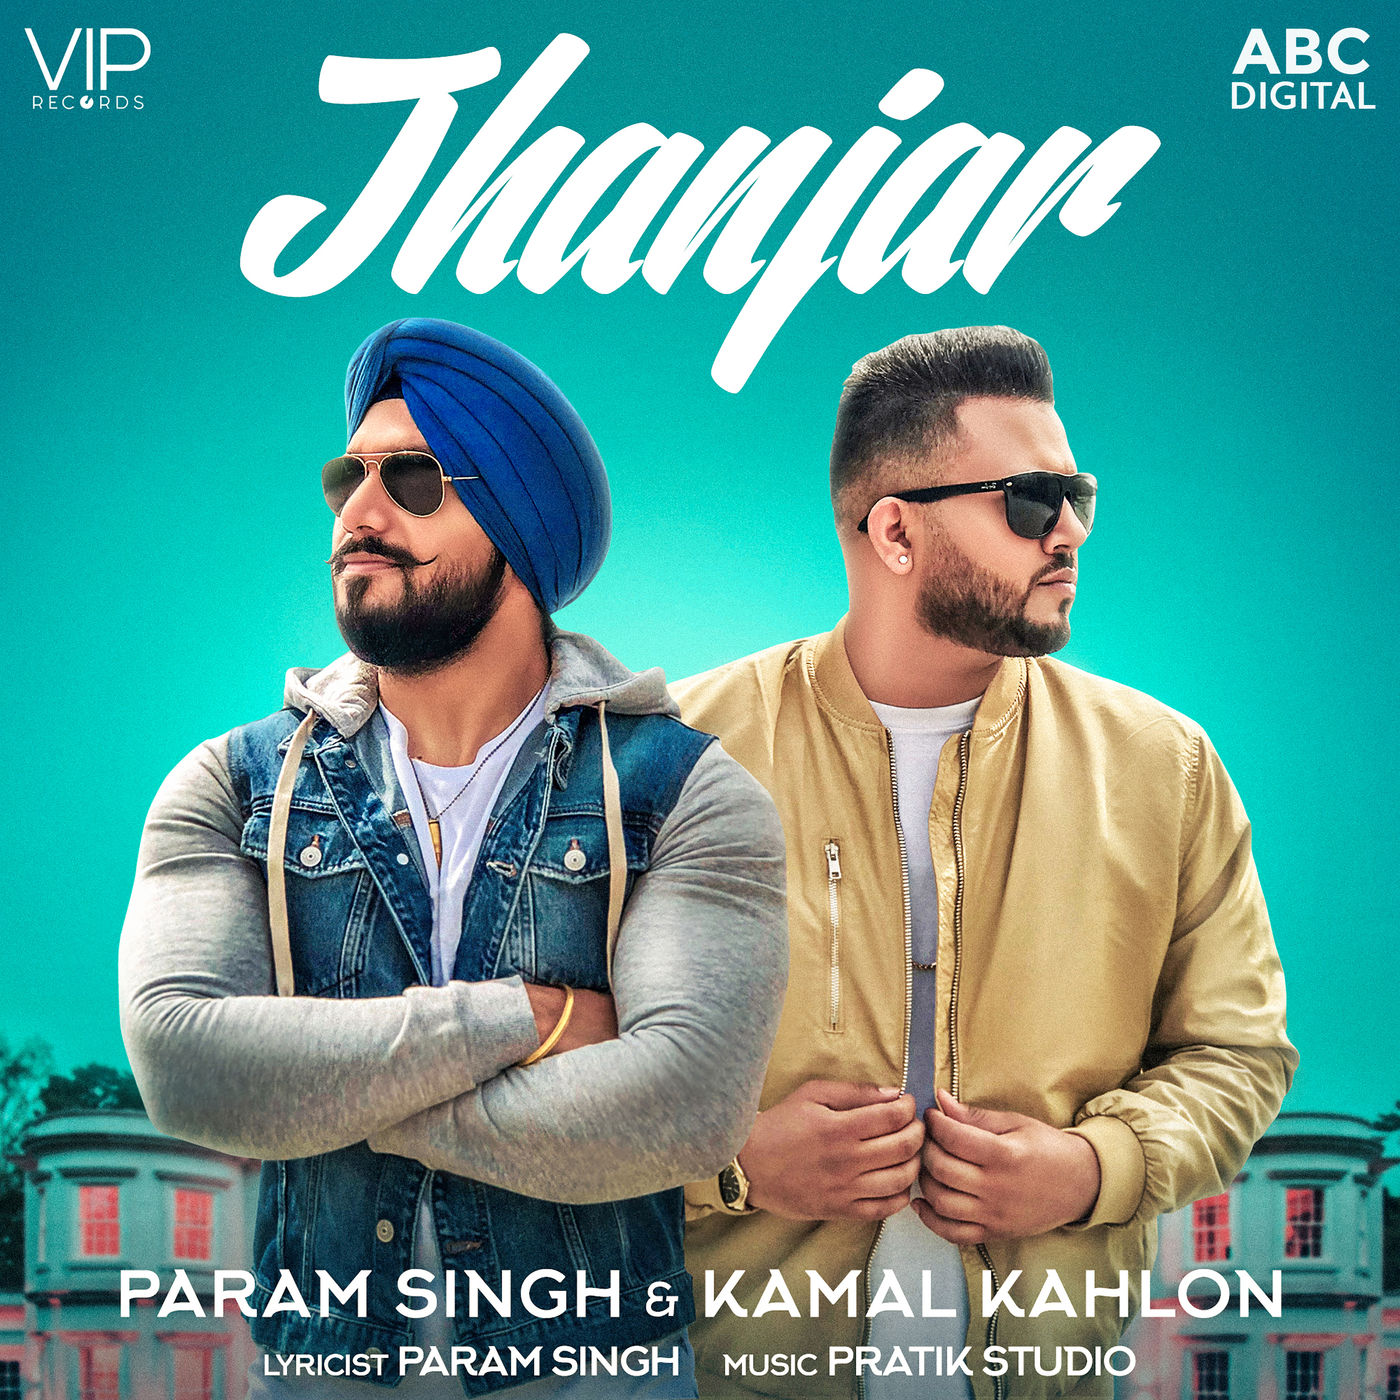 Param Singh & Kamal Kahlon – Jhanjar (with Pratik Studio) – Single [iTunes Match M4A] | iplusall.4fullz.com